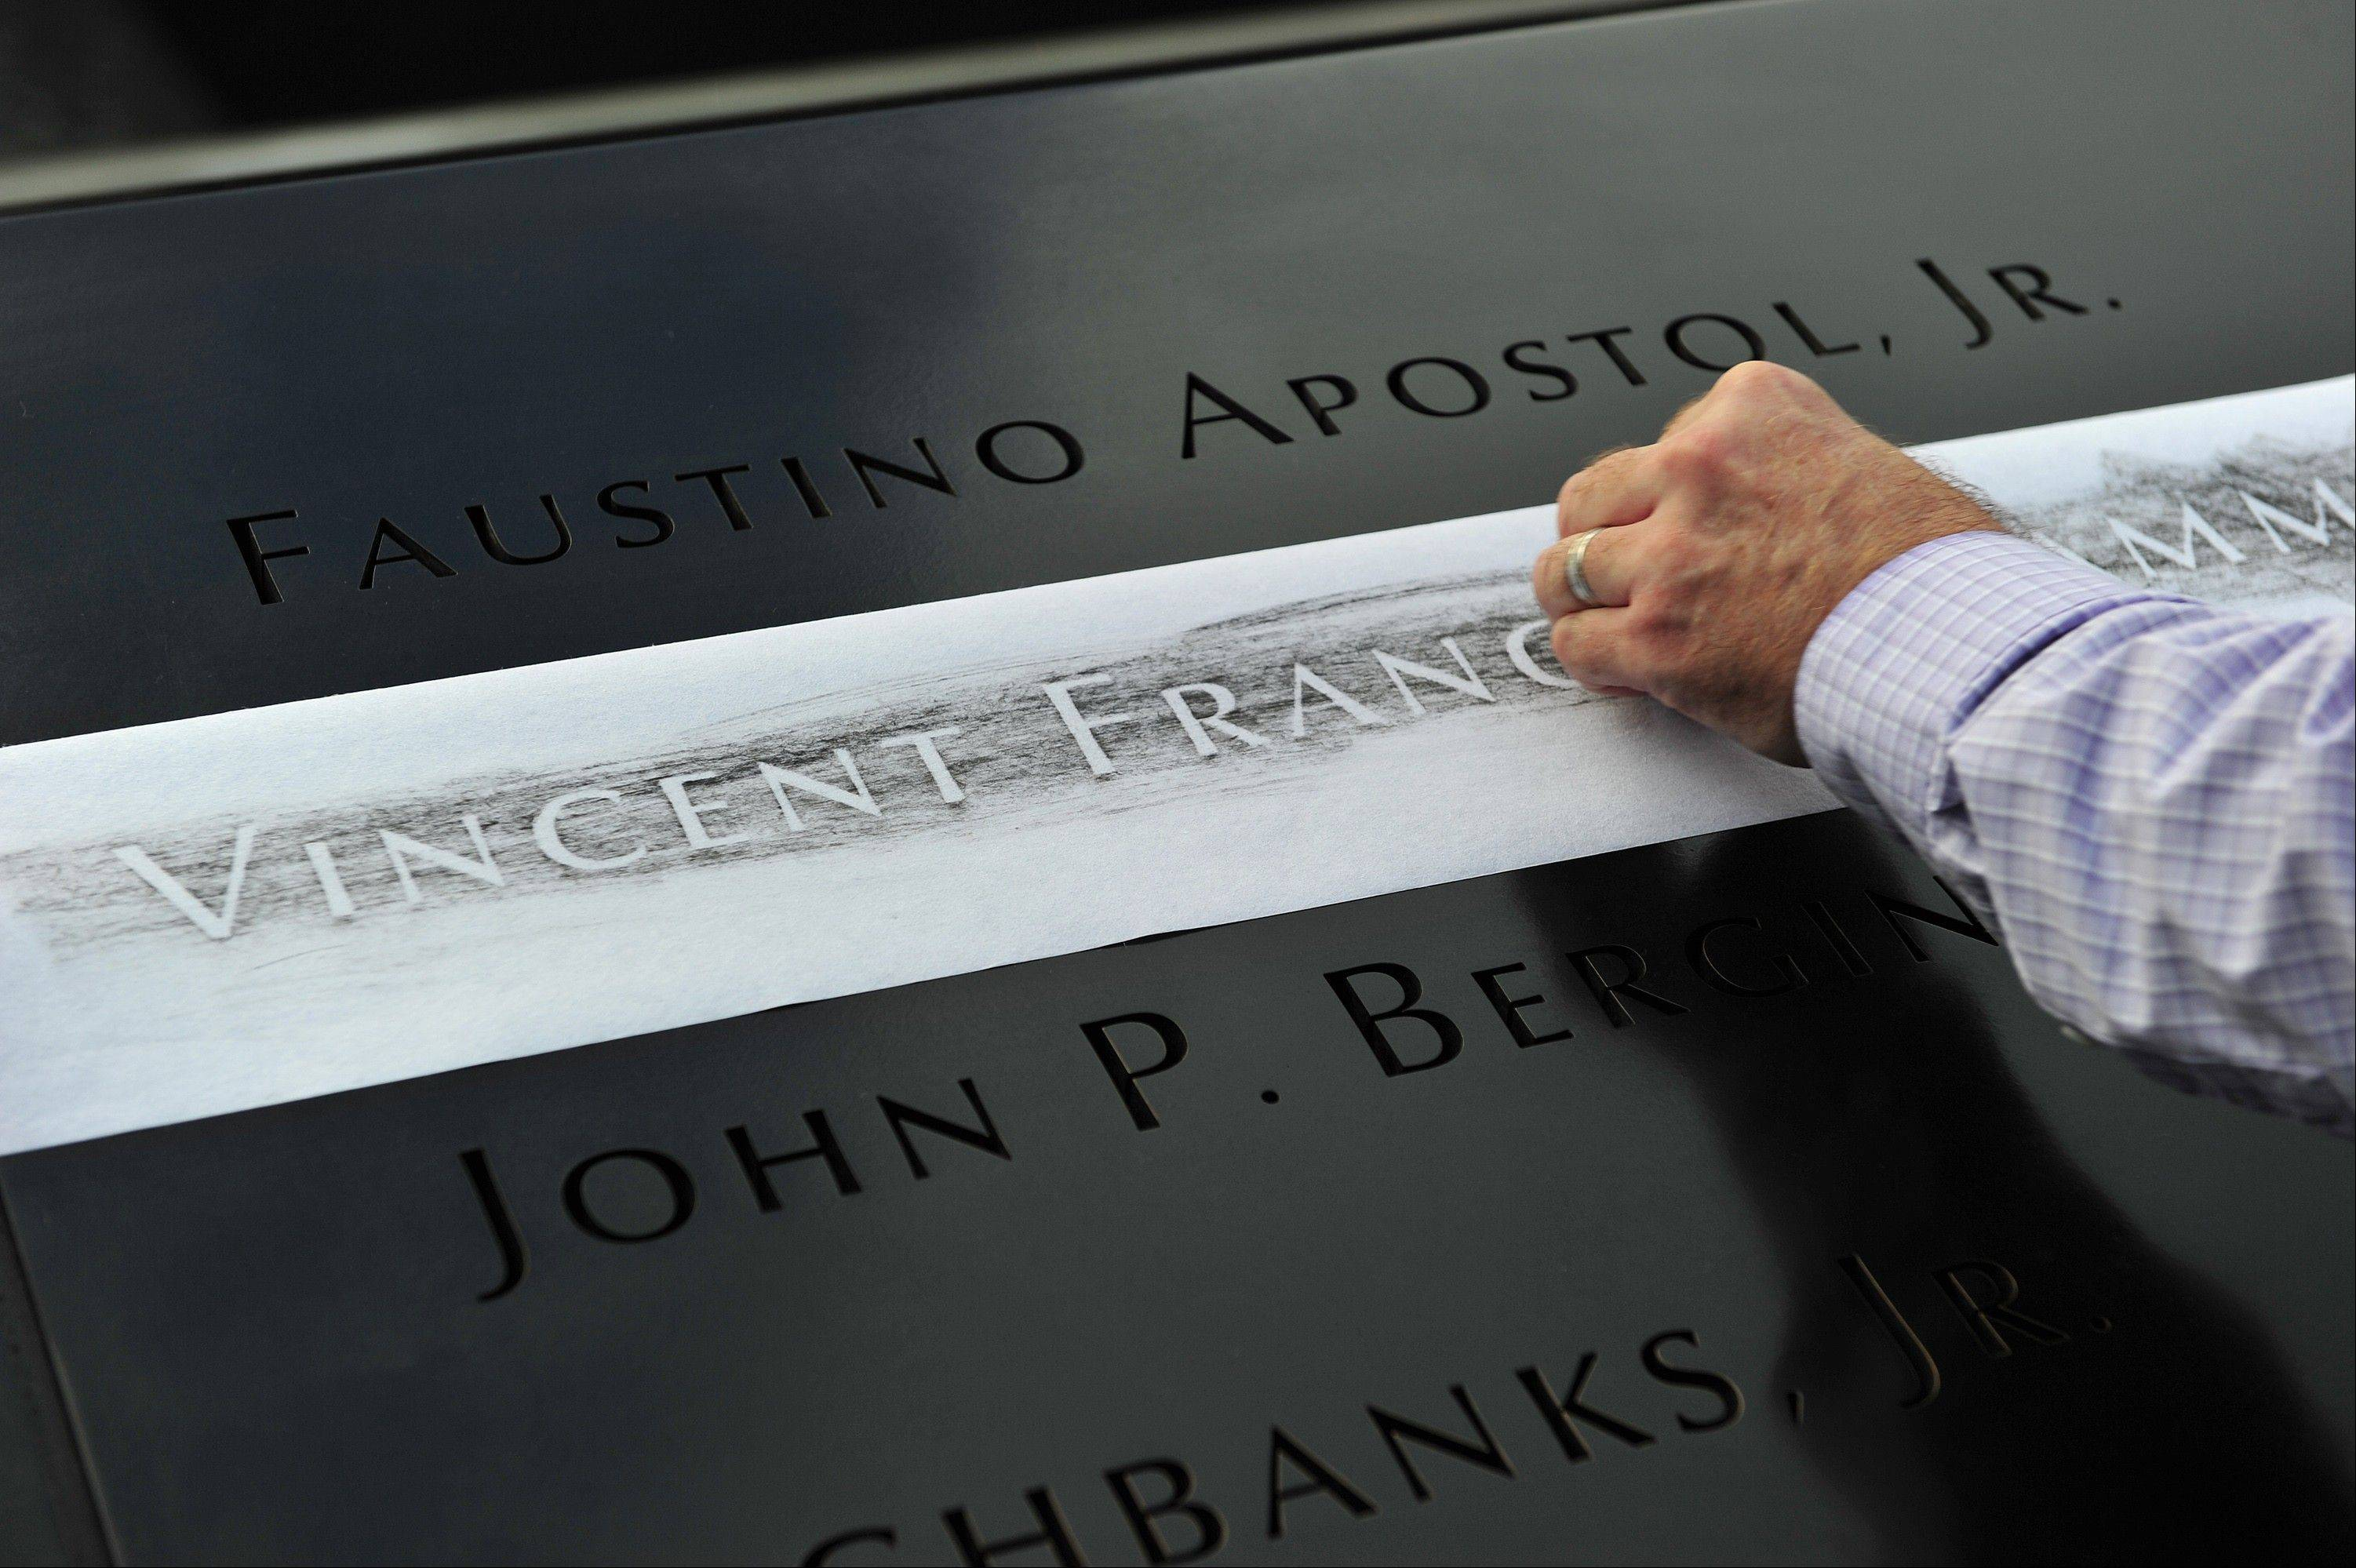 Ron Joy makes a rubbing of his friend's name, New York Fire Department firefighter Capt. Vincent Giammona, at the South reflecting pool at the Sept. 11 memorial on Wednesday, Sept. 11, 2013, during ceremonies marking the 12th anniversary of the Sept. 11 terrorist attacks in New York.